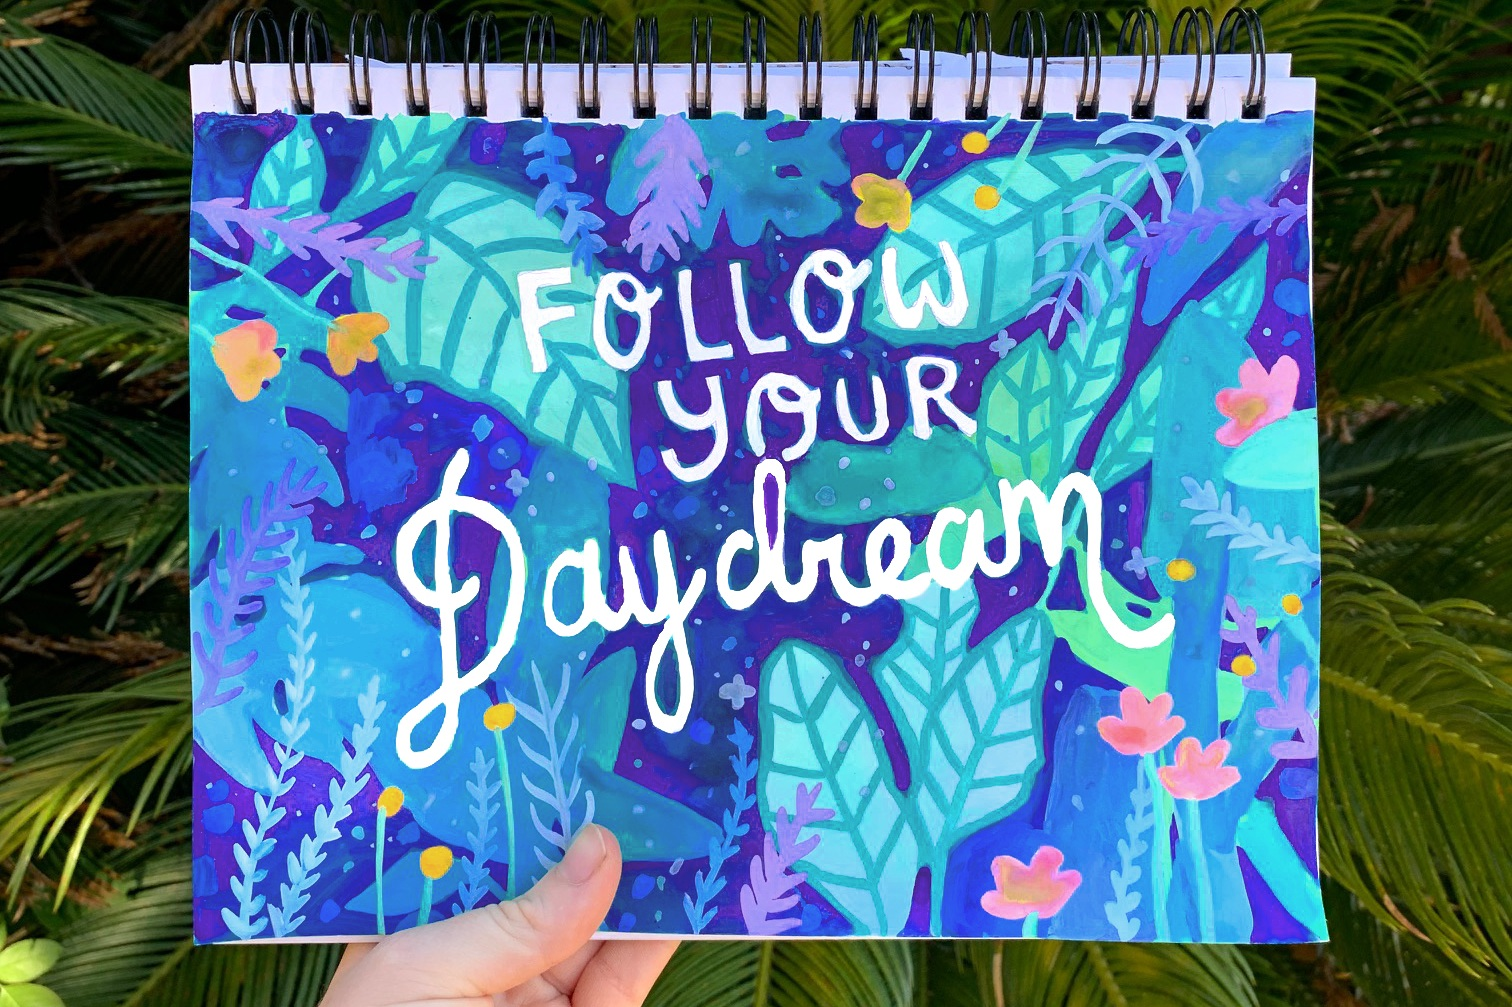 followyourdaydream.jpg